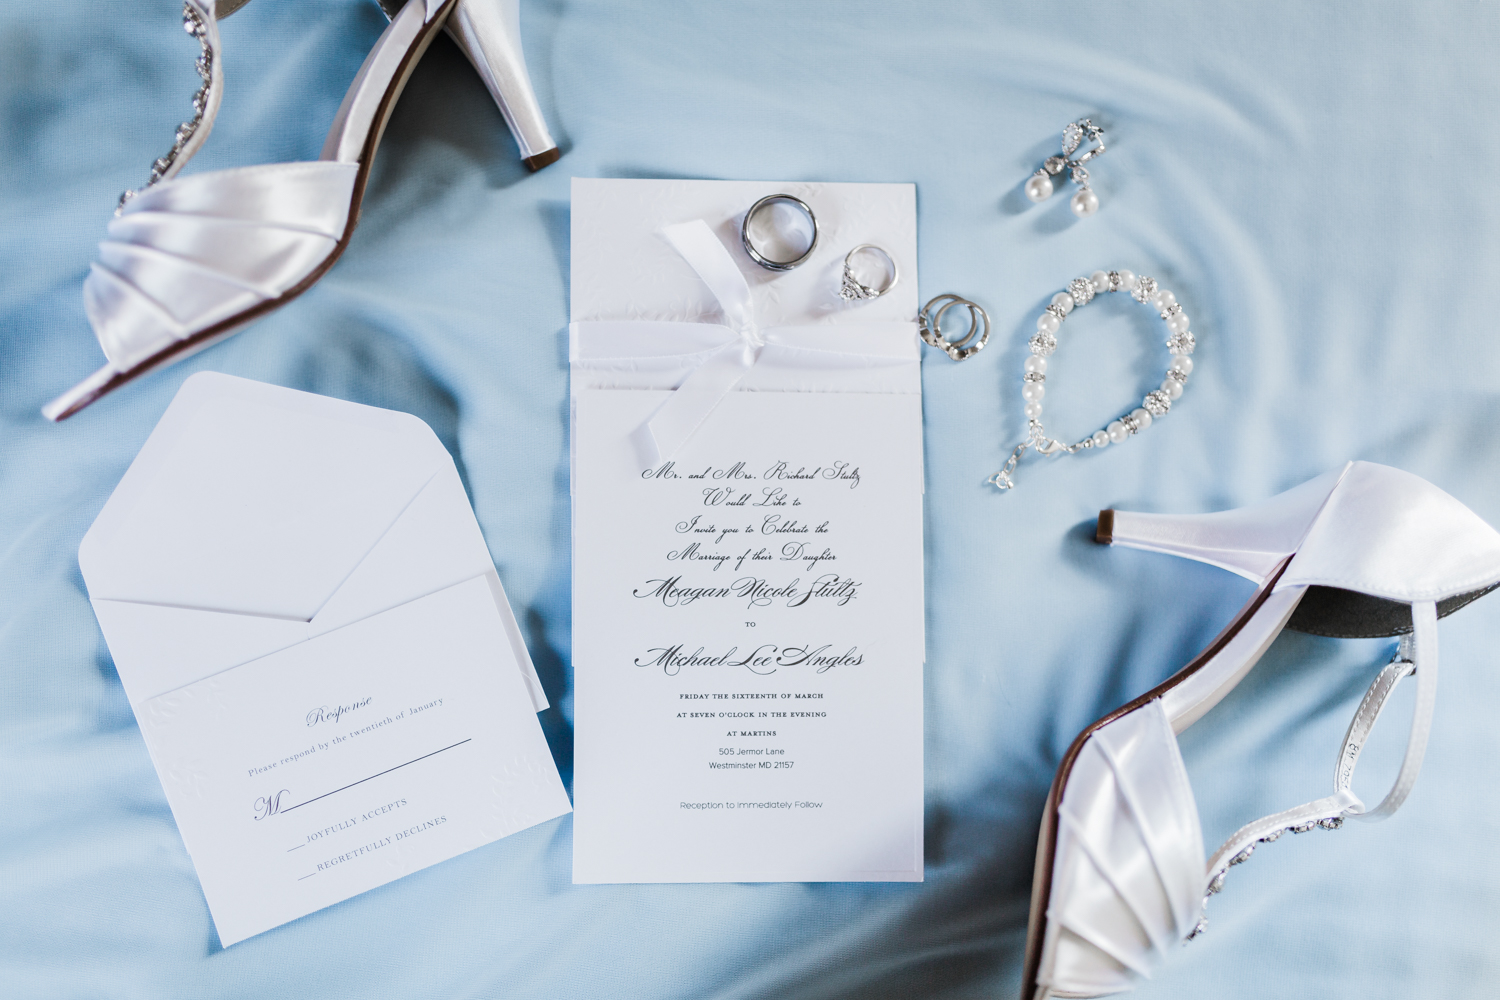 Wedding day details and invitation suite